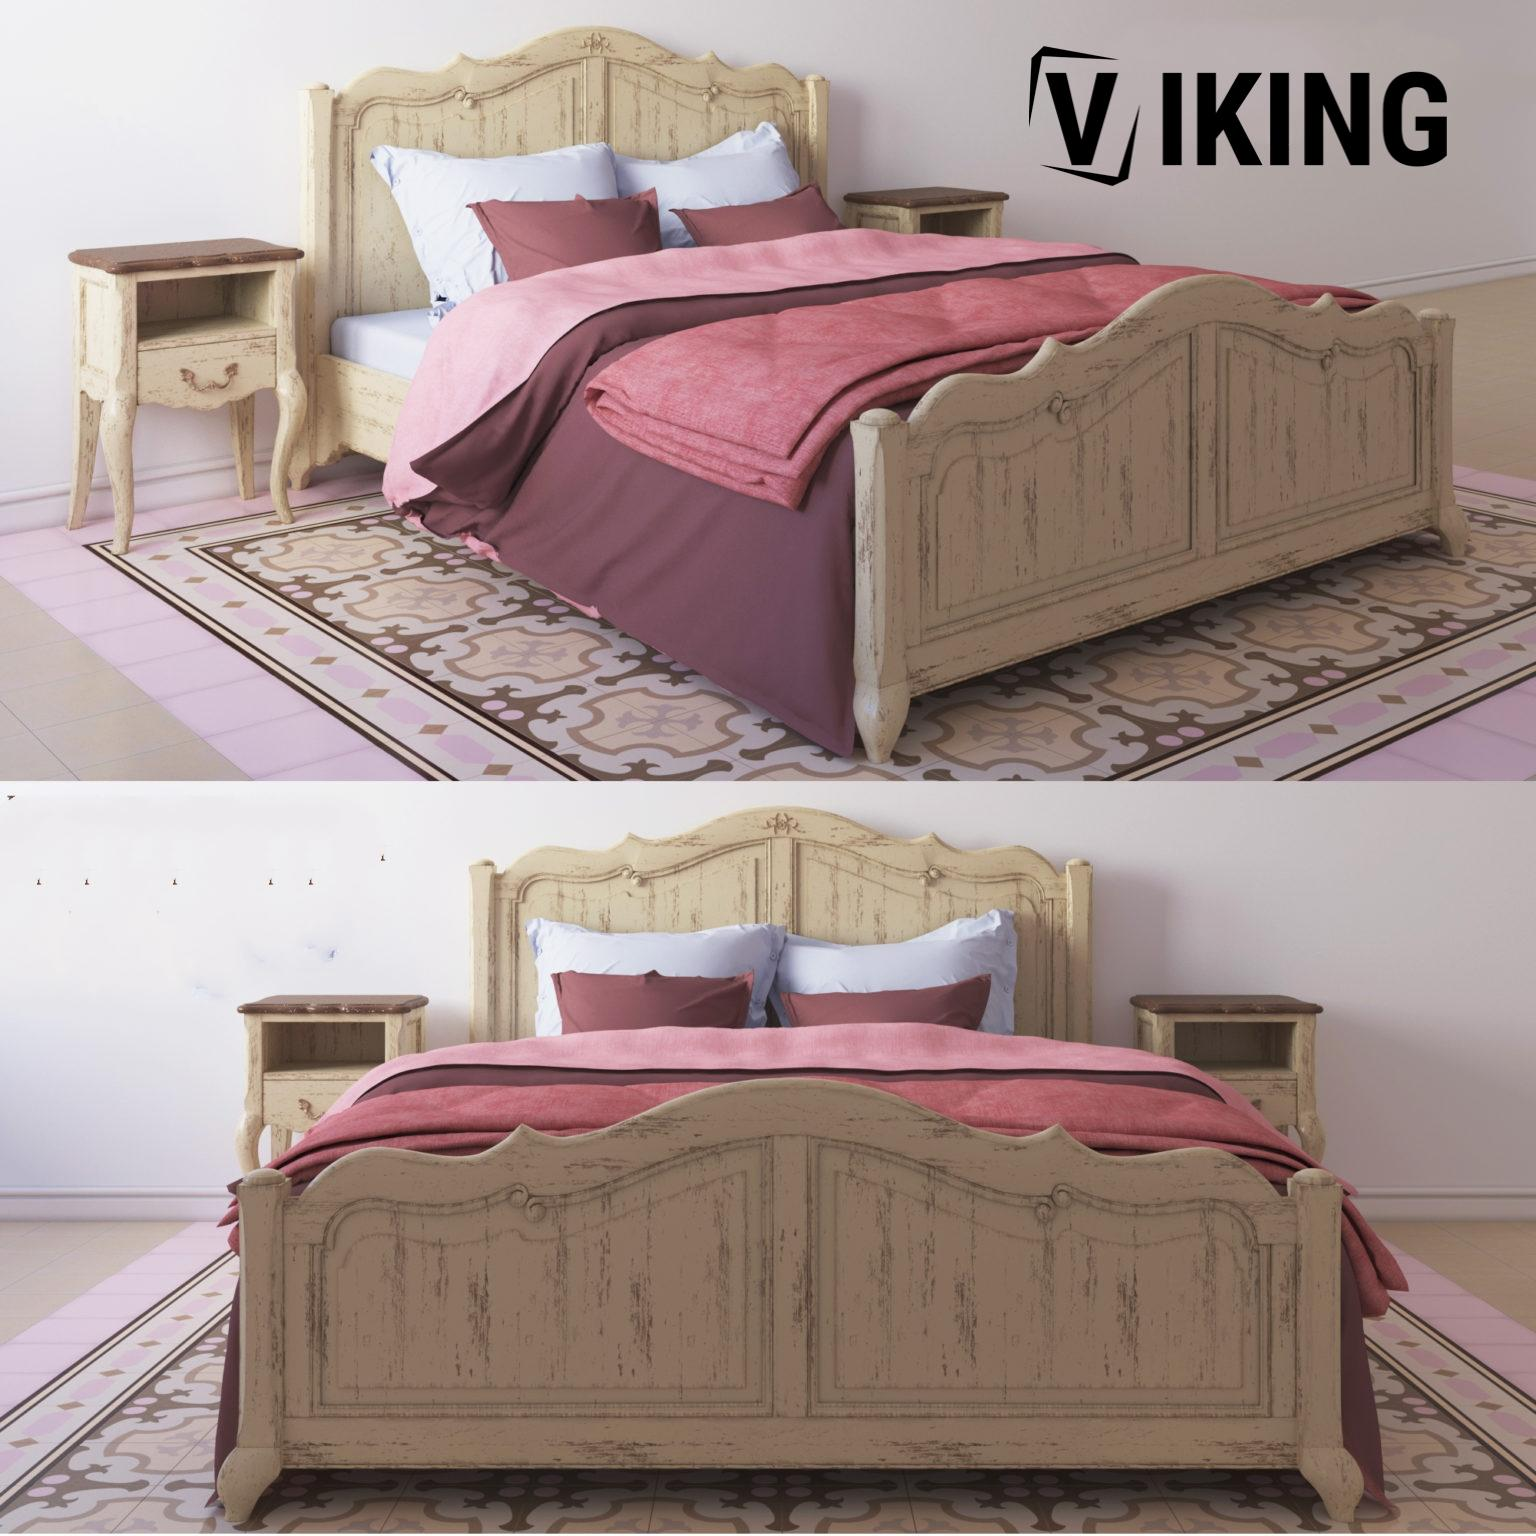 3D Bed Chateau HRL0 LG and nightstand open Chateau HRC1 Model 199 Free Download 1 1536x1536 3